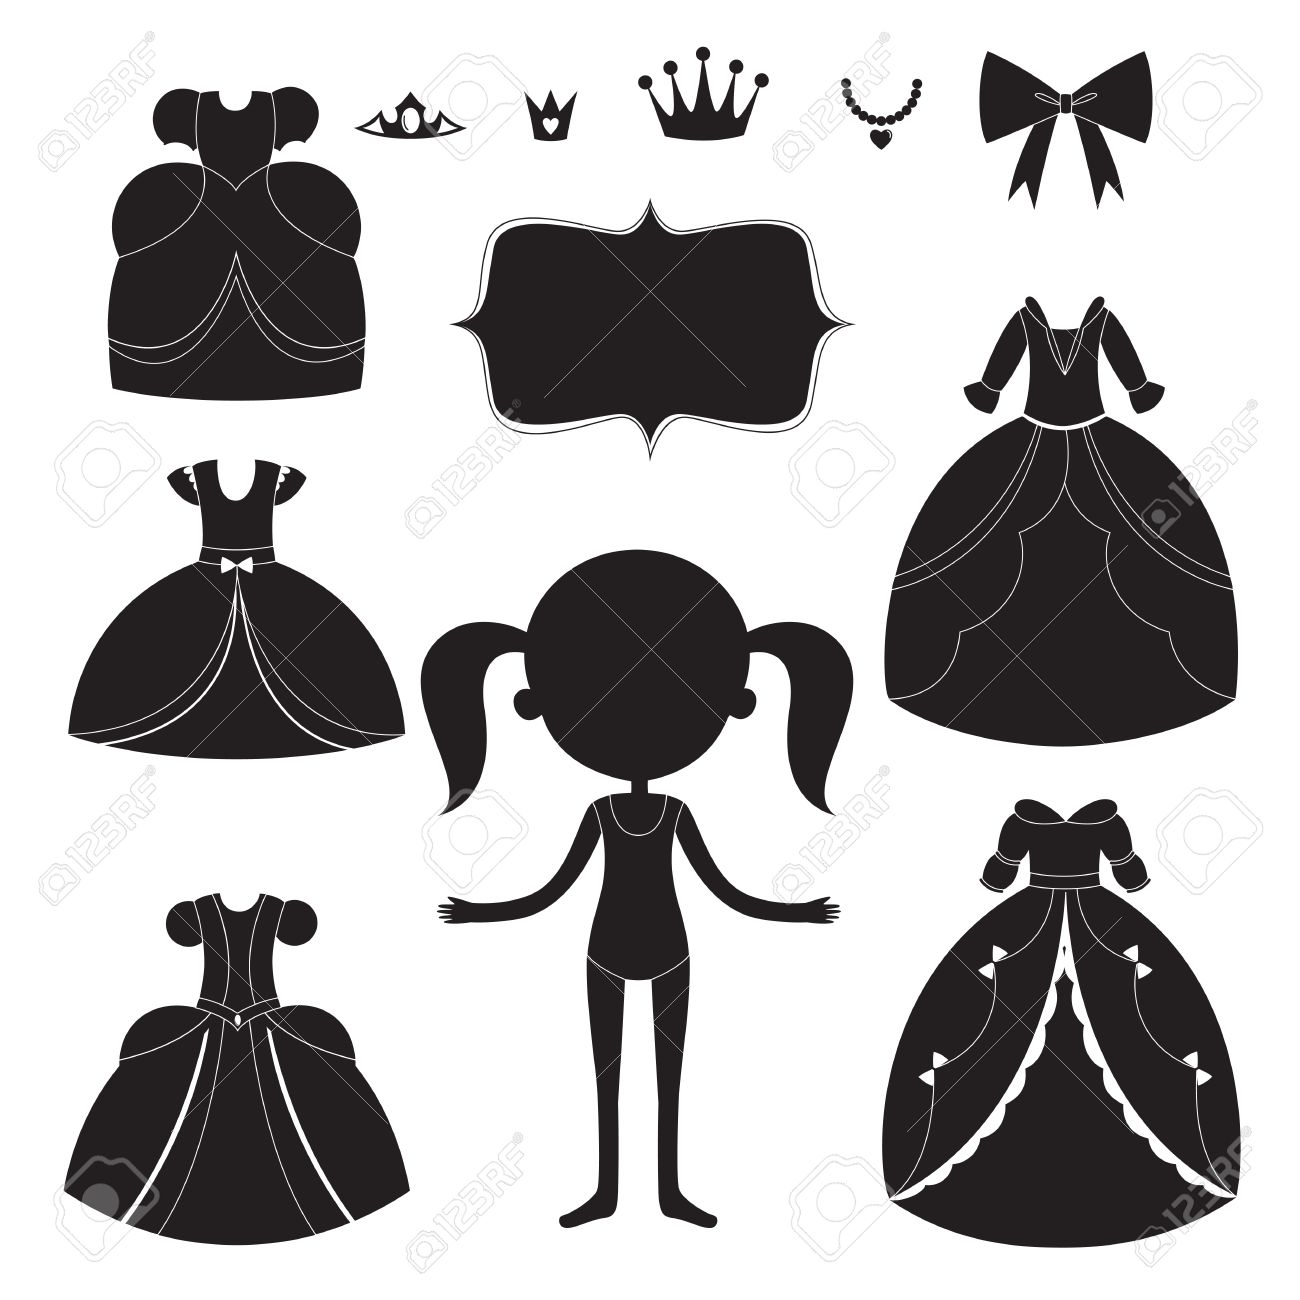 Black dress cartoon - Princess Dress Silhouettes Set Cartoon Black And White Wearable Items Stock Vector 56720704